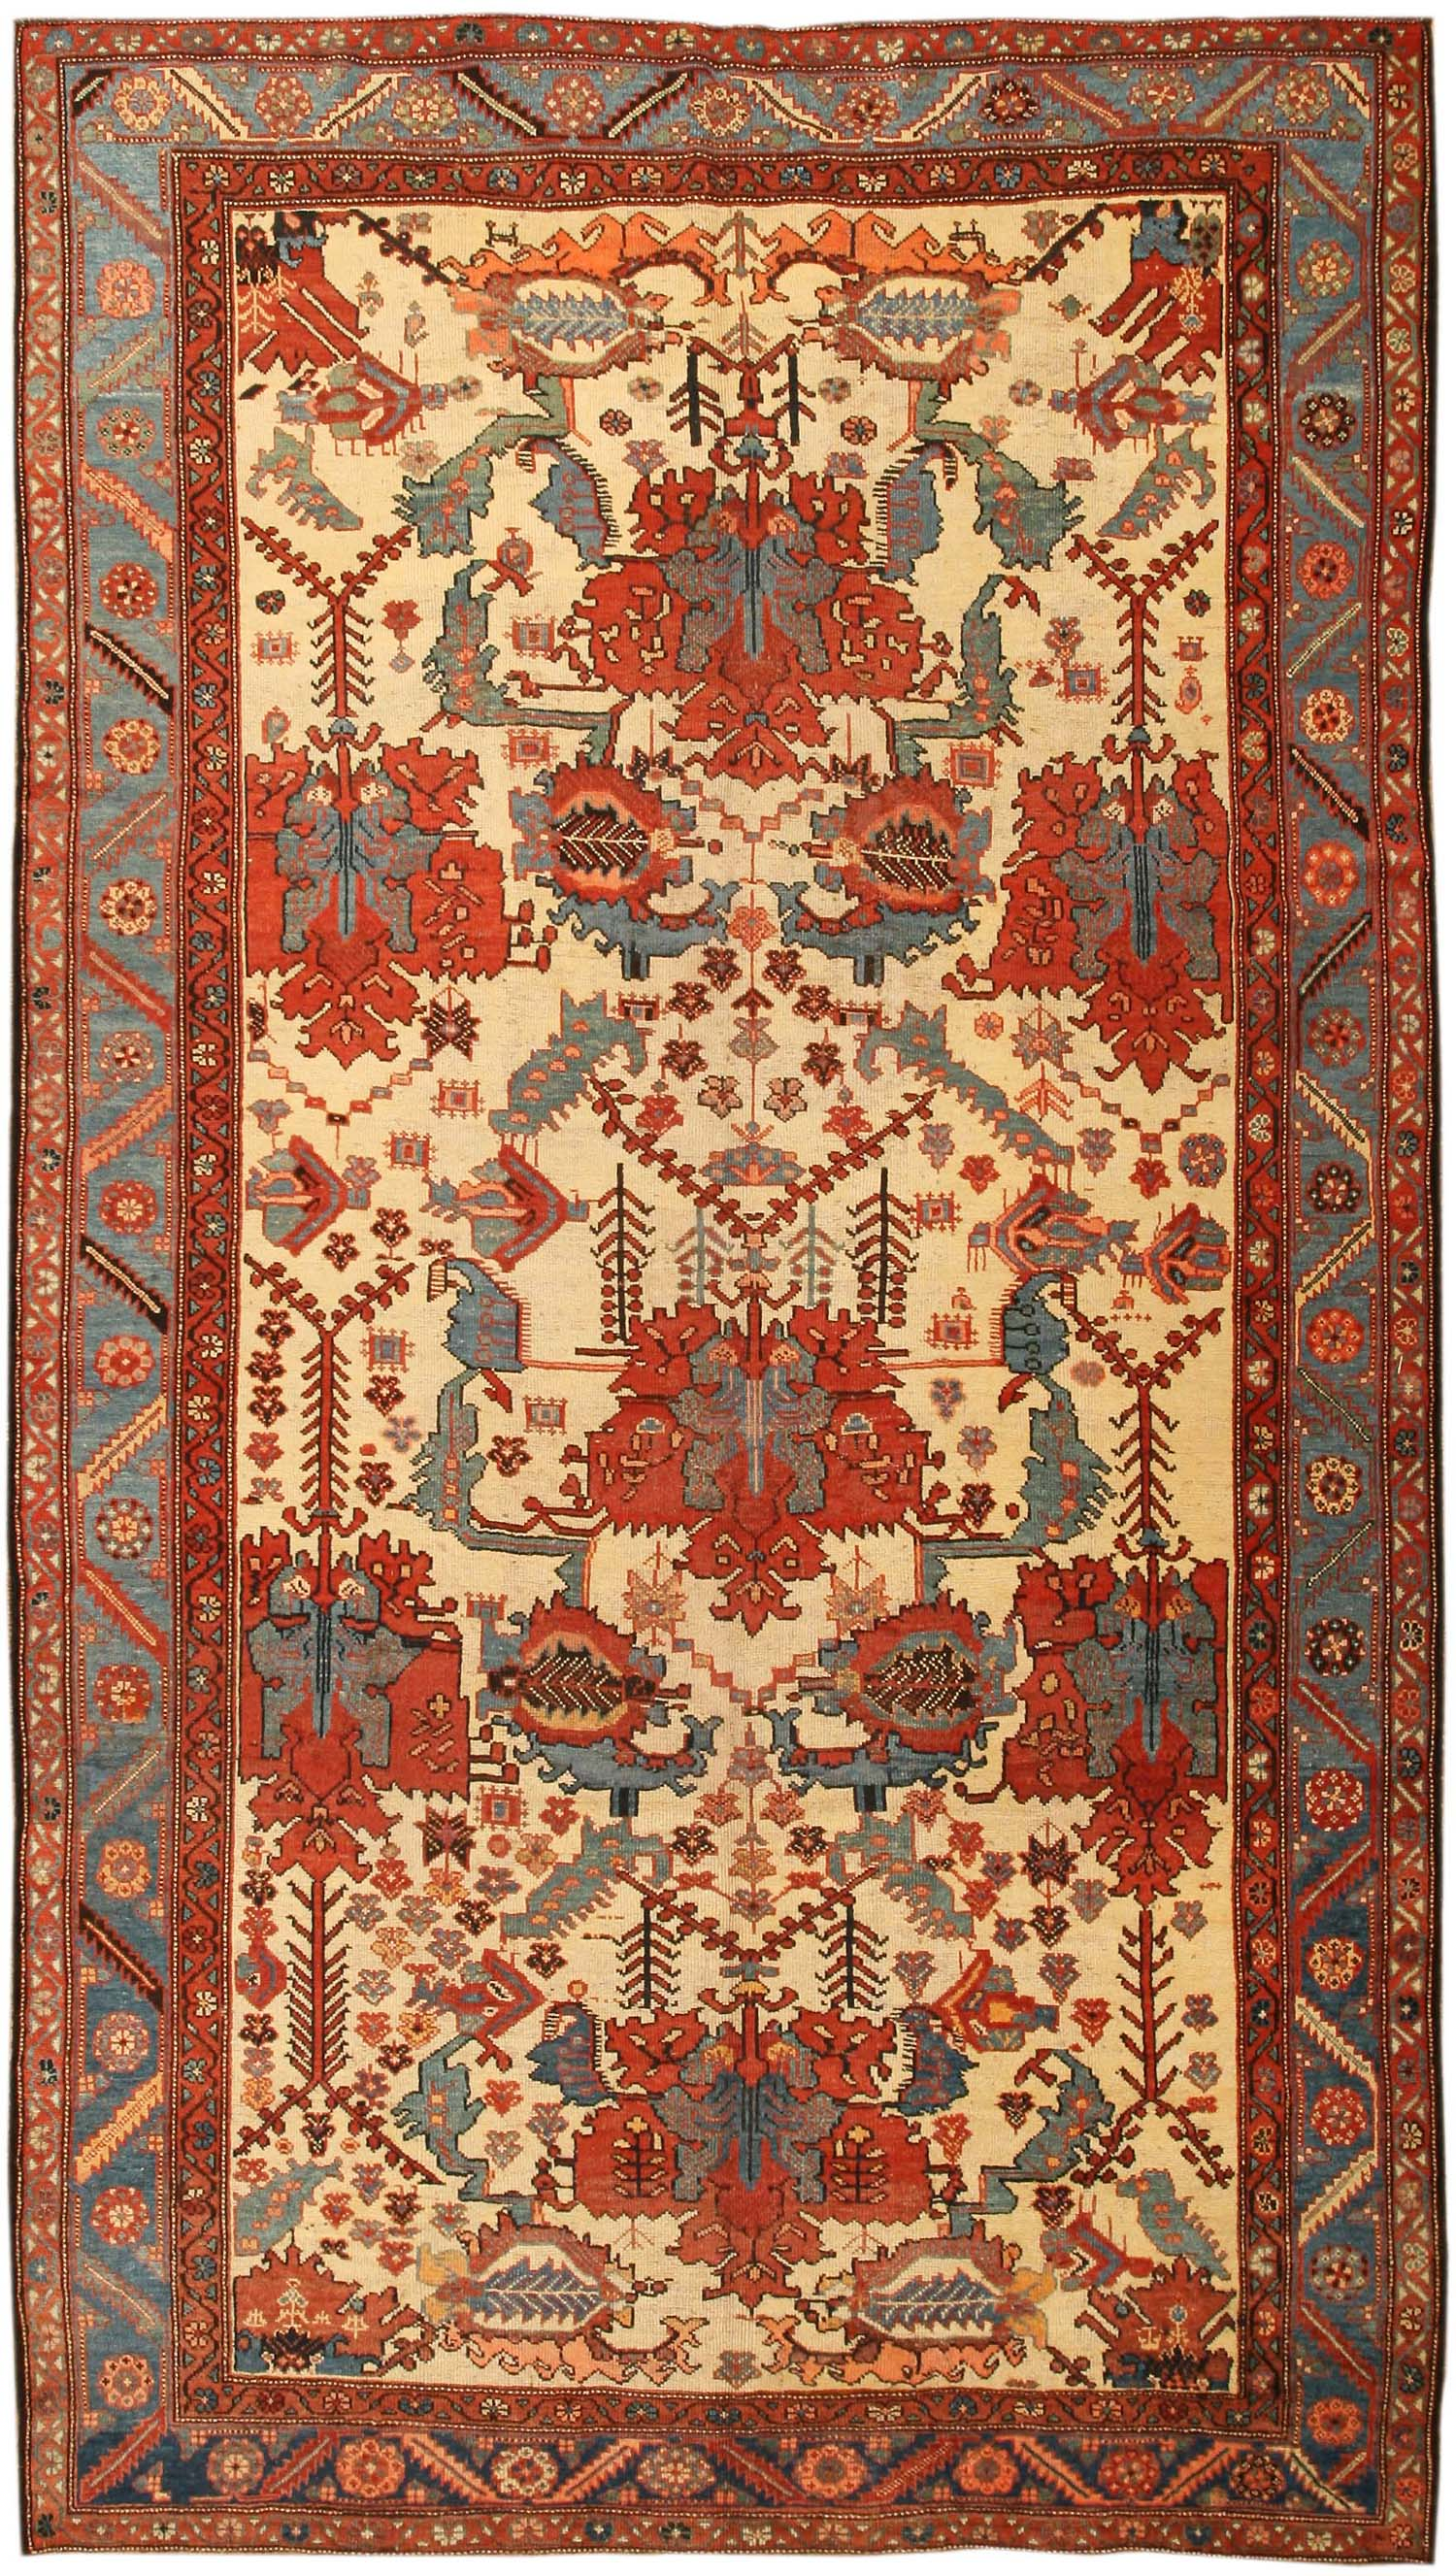 Antique Bakhtiari Persia Late Nineth Century Although Carpets Represent A Village Or Tribal Rug Weaving Tradition Some